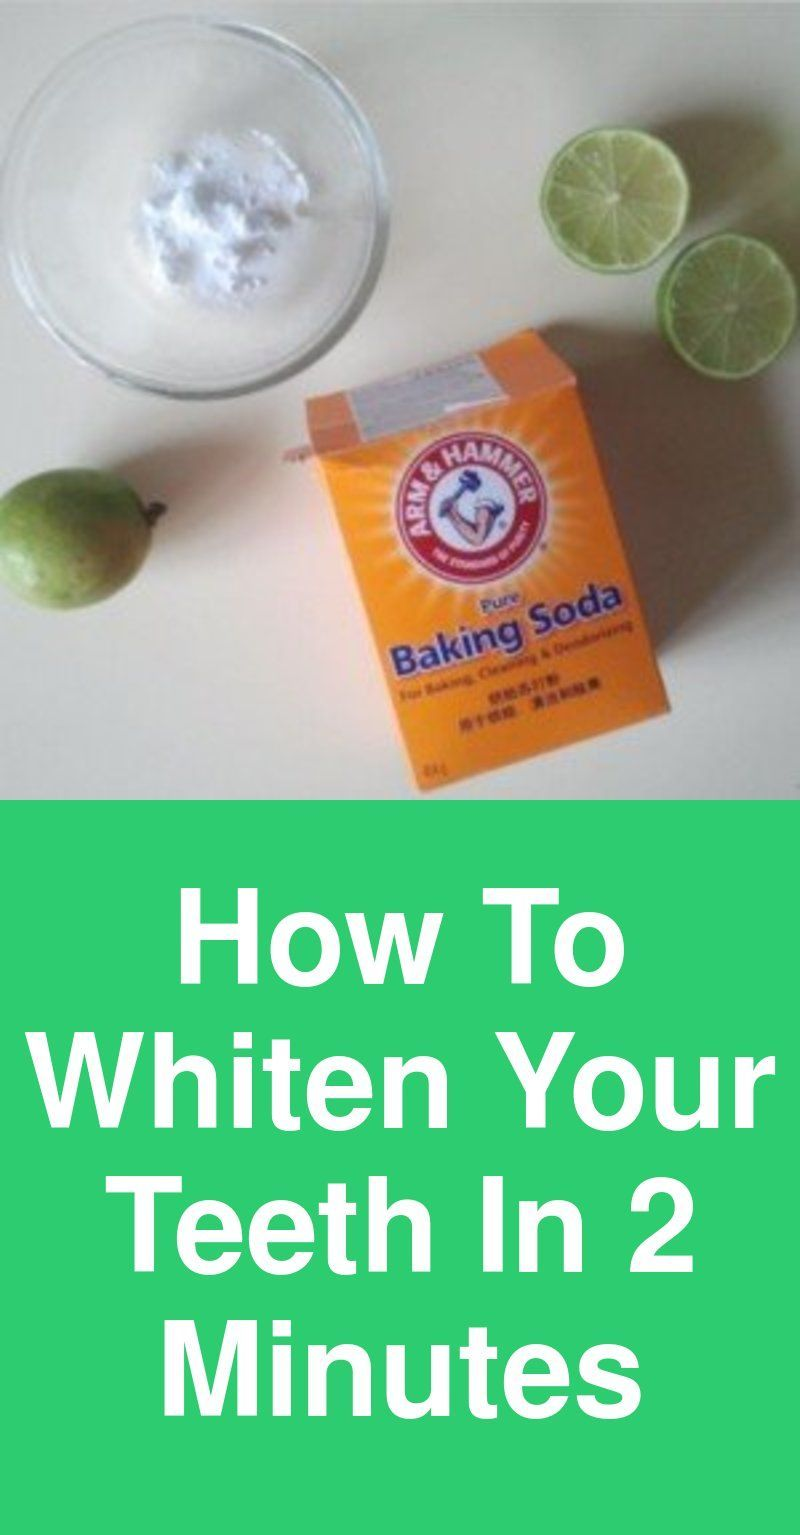 How to whiten your teeth in 2 minutes #howtowhitenyourteeth